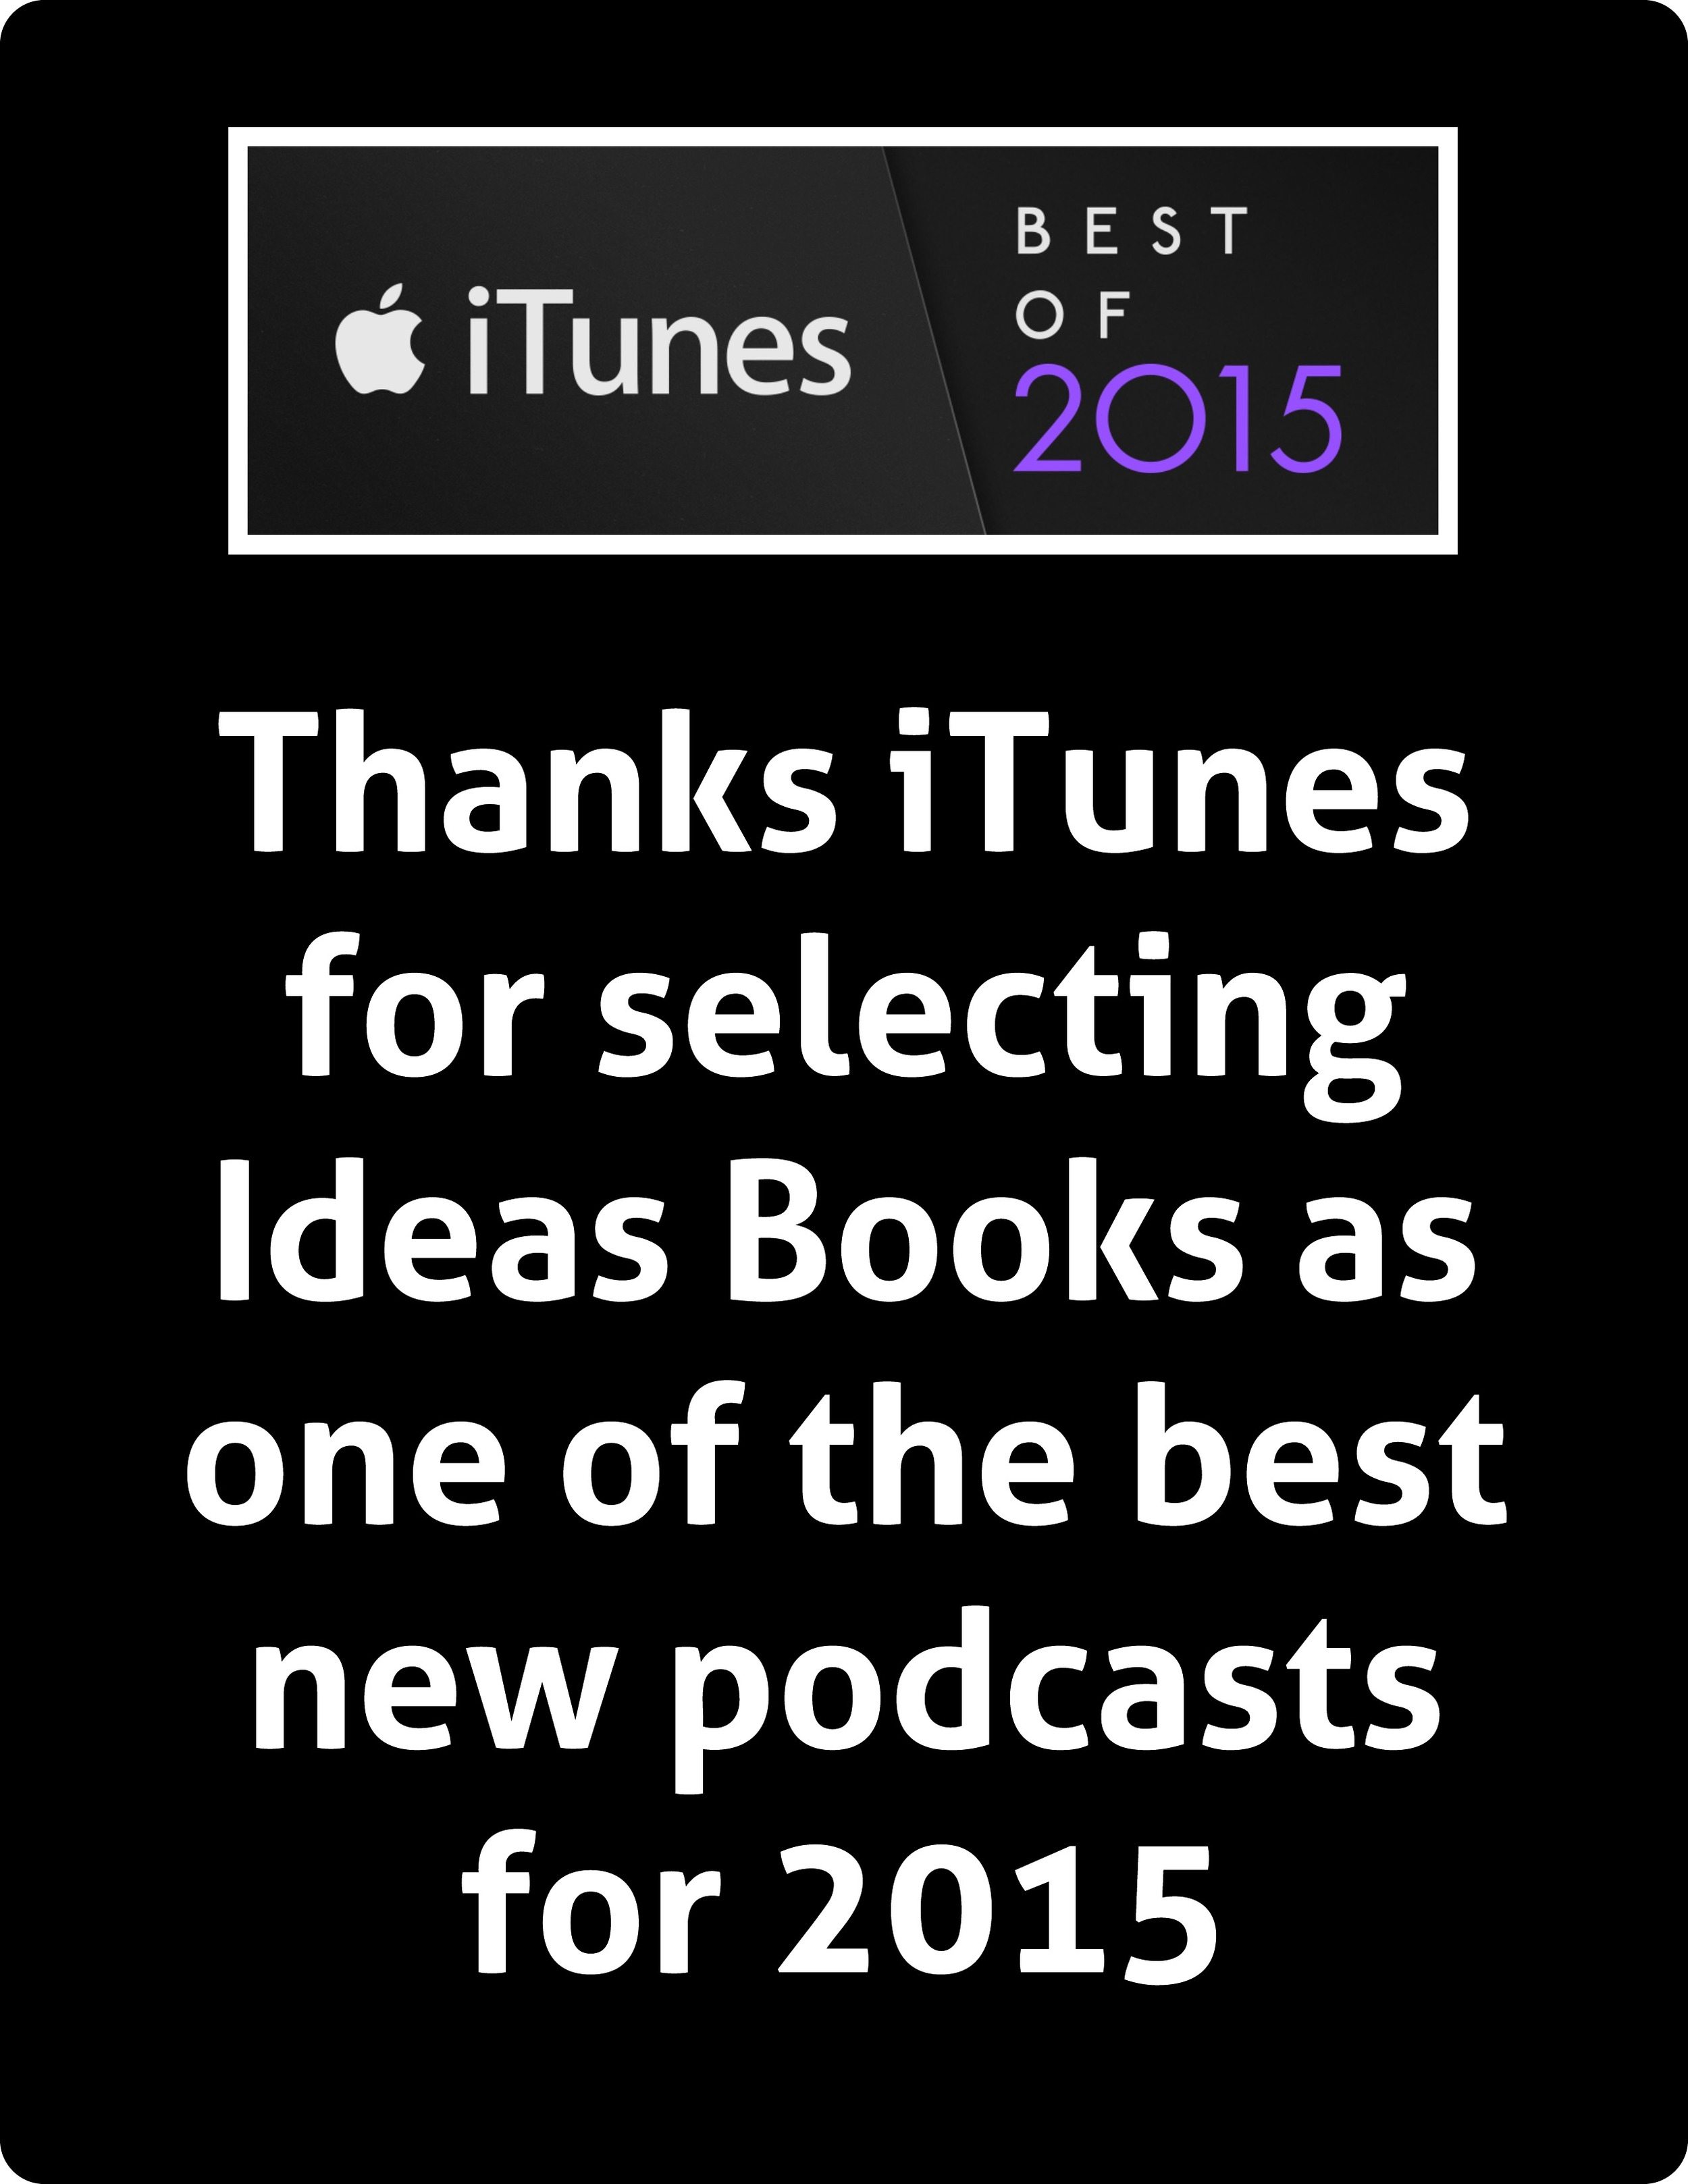 Best of iTunes Ideas Books